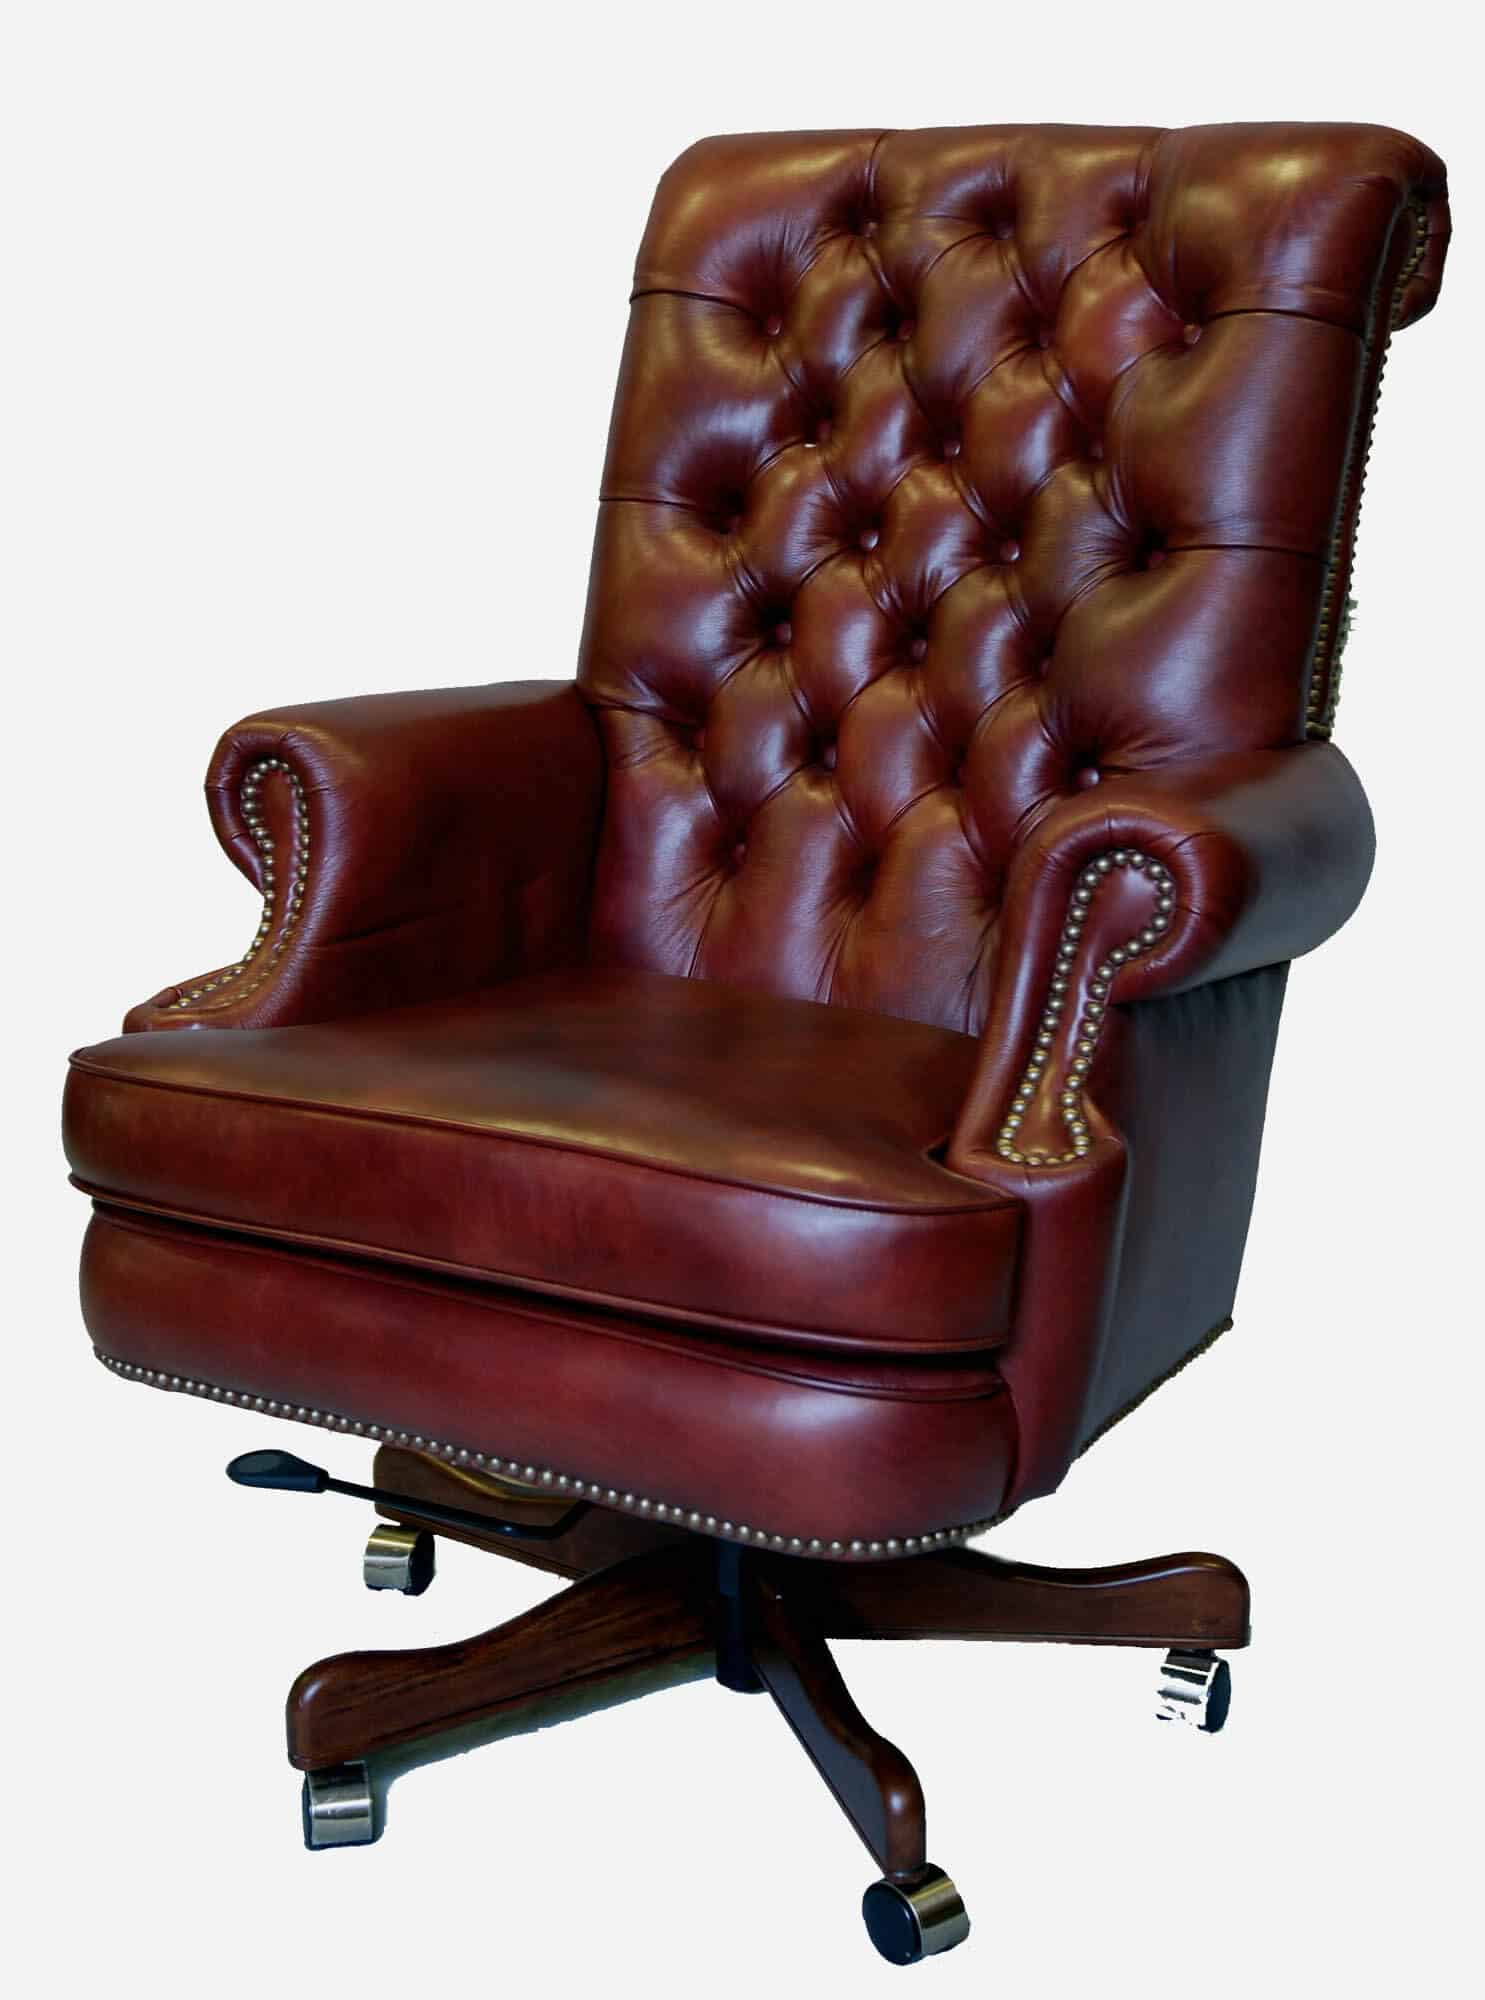 Desk Chair Guide Why How To Buy An Office Chair